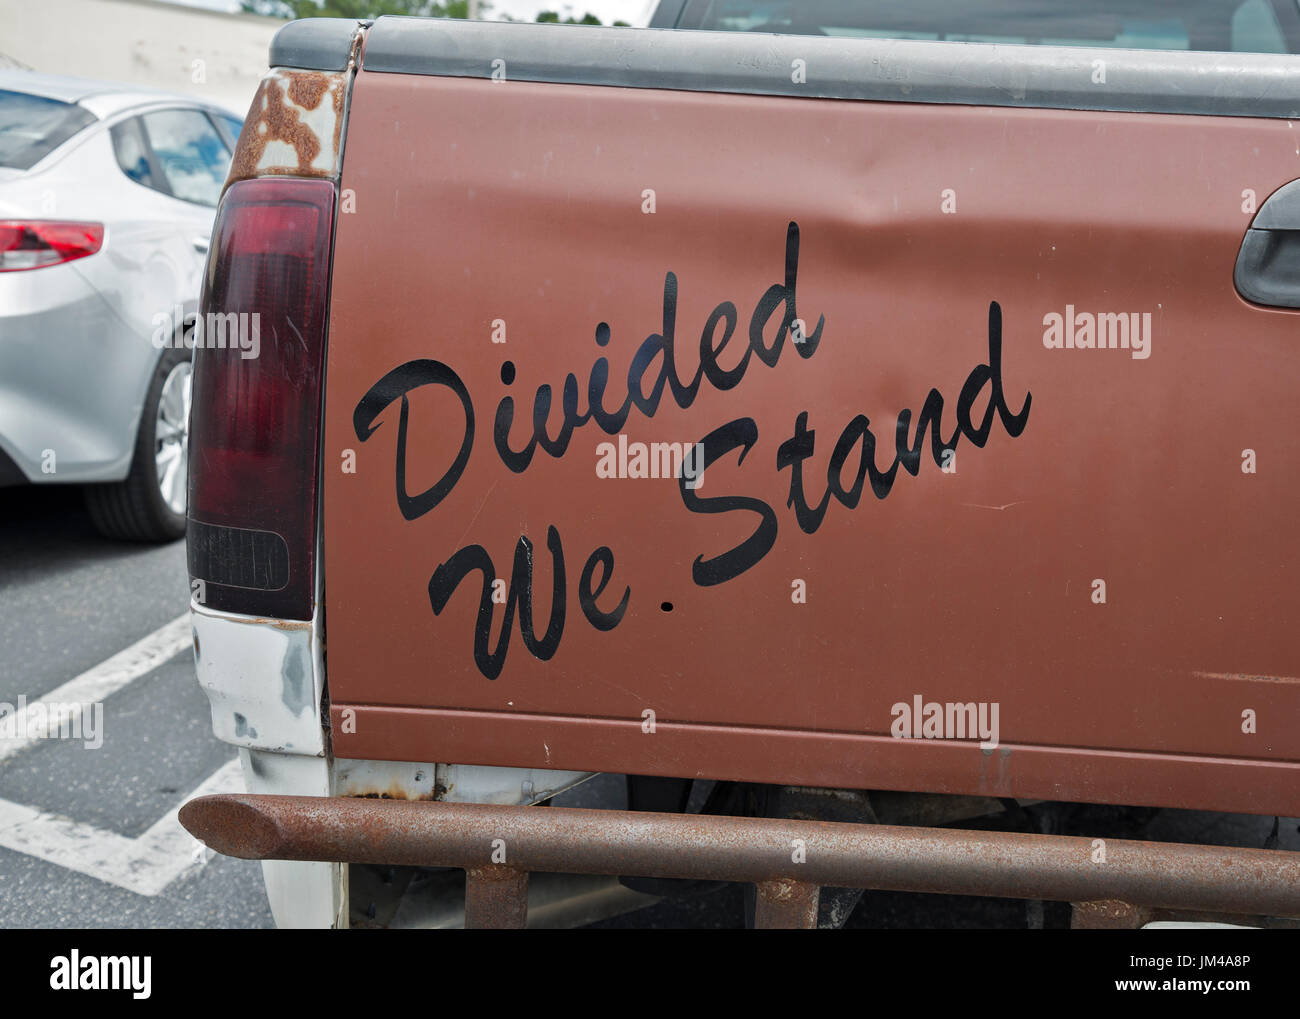 Divided We Stand written on back taligate of a pickup truck. - Stock Image